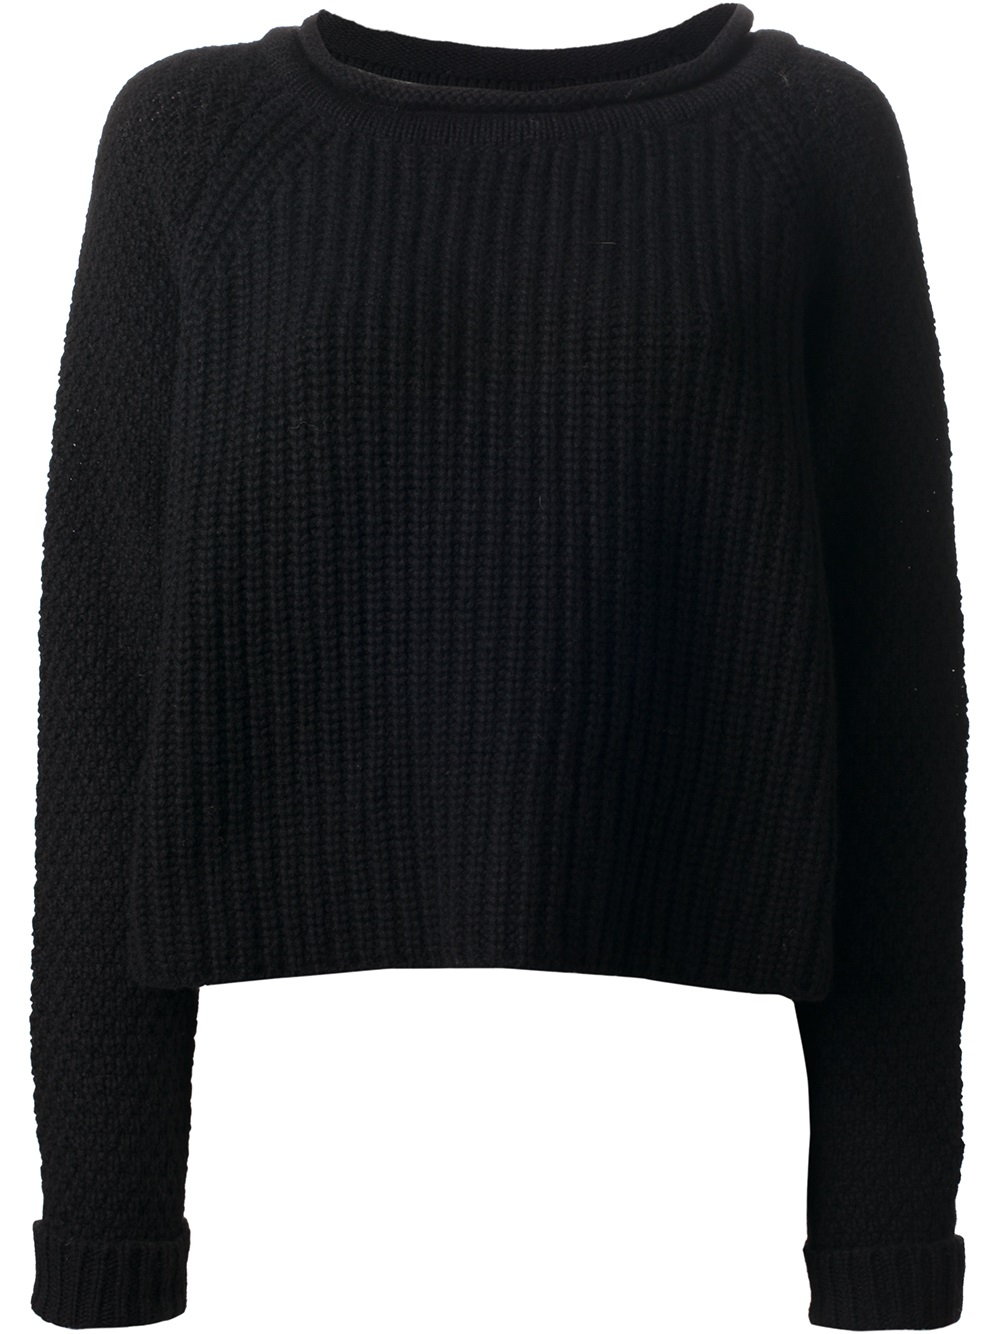 Jo no fui Chunky Knit Sweater in Black | Lyst